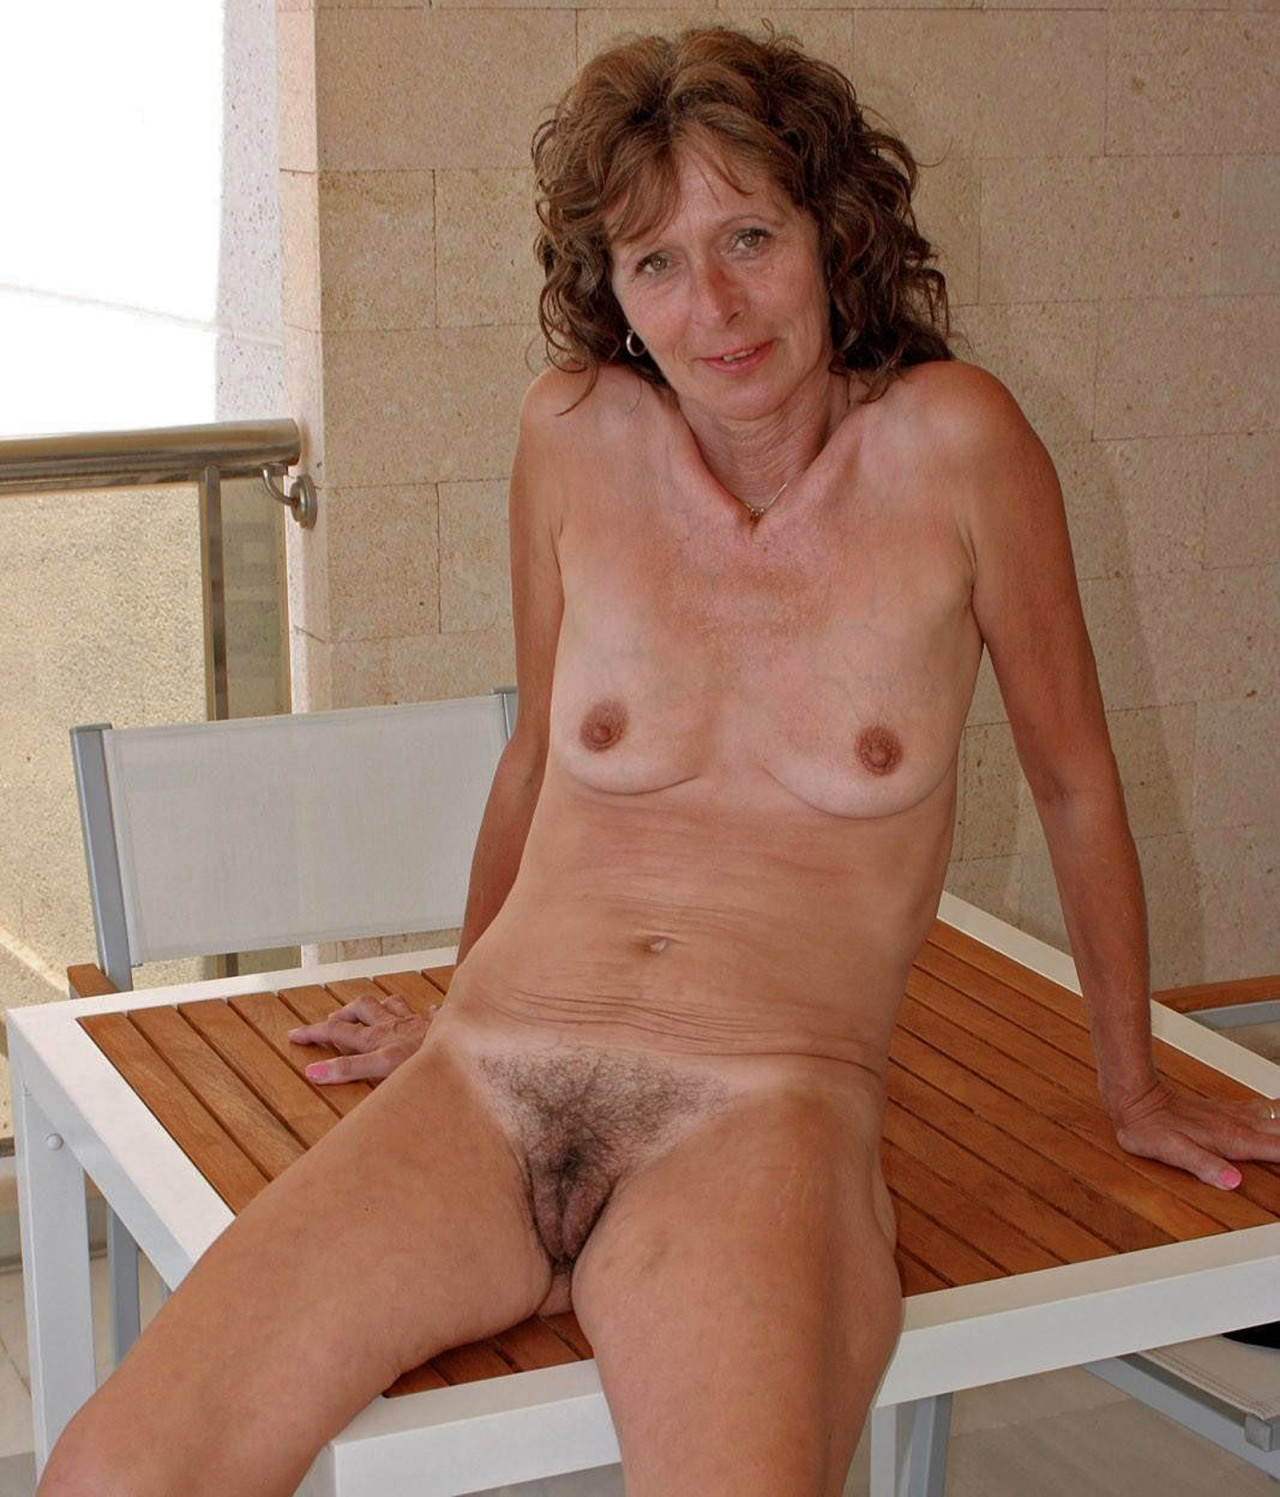 Mature women with small saggy breasts